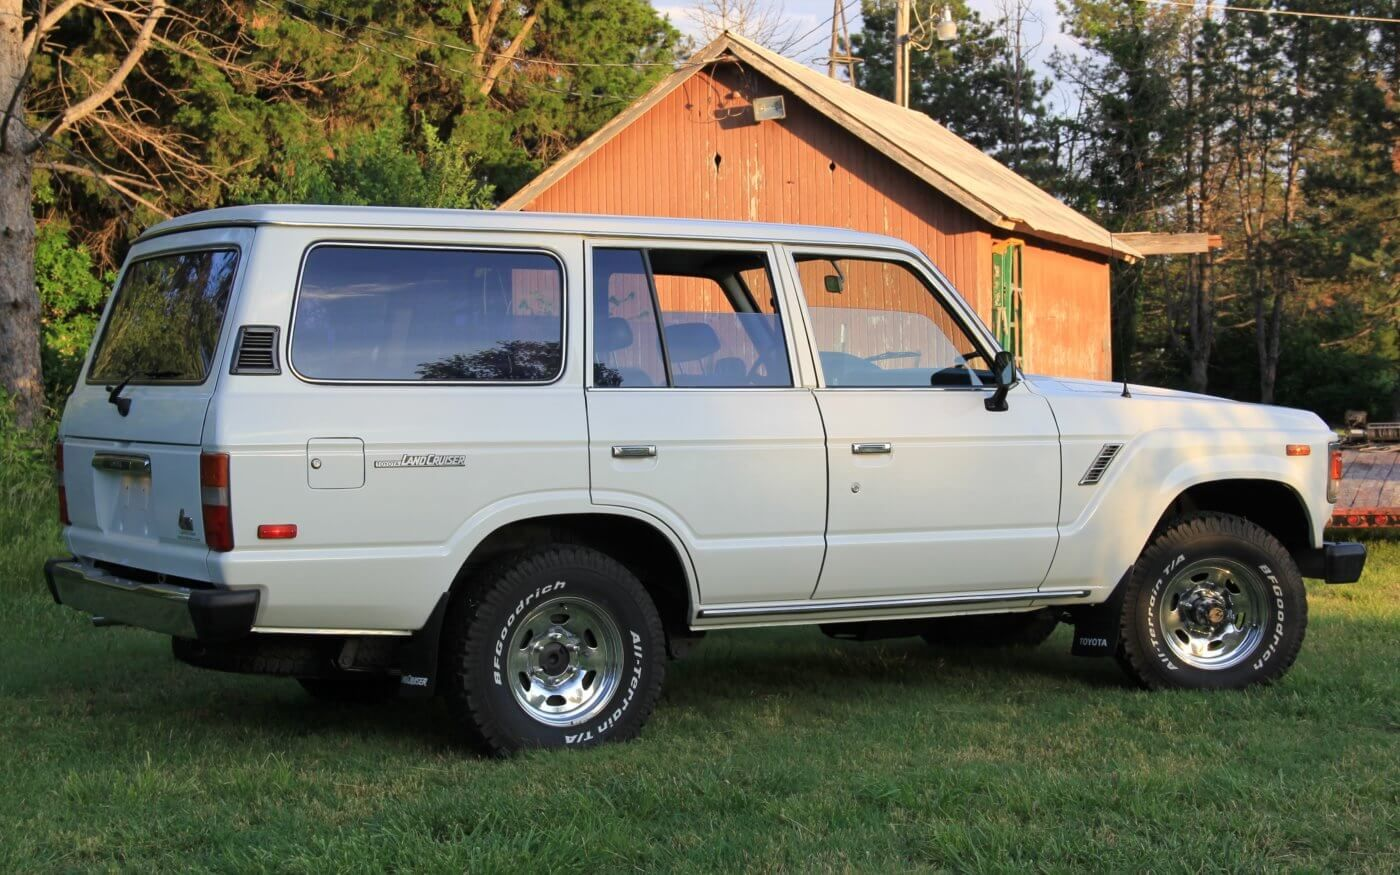 Restored Toyota Land Cruiser Images In 2020 Land Cruiser Toyota Land Cruiser Cruisers